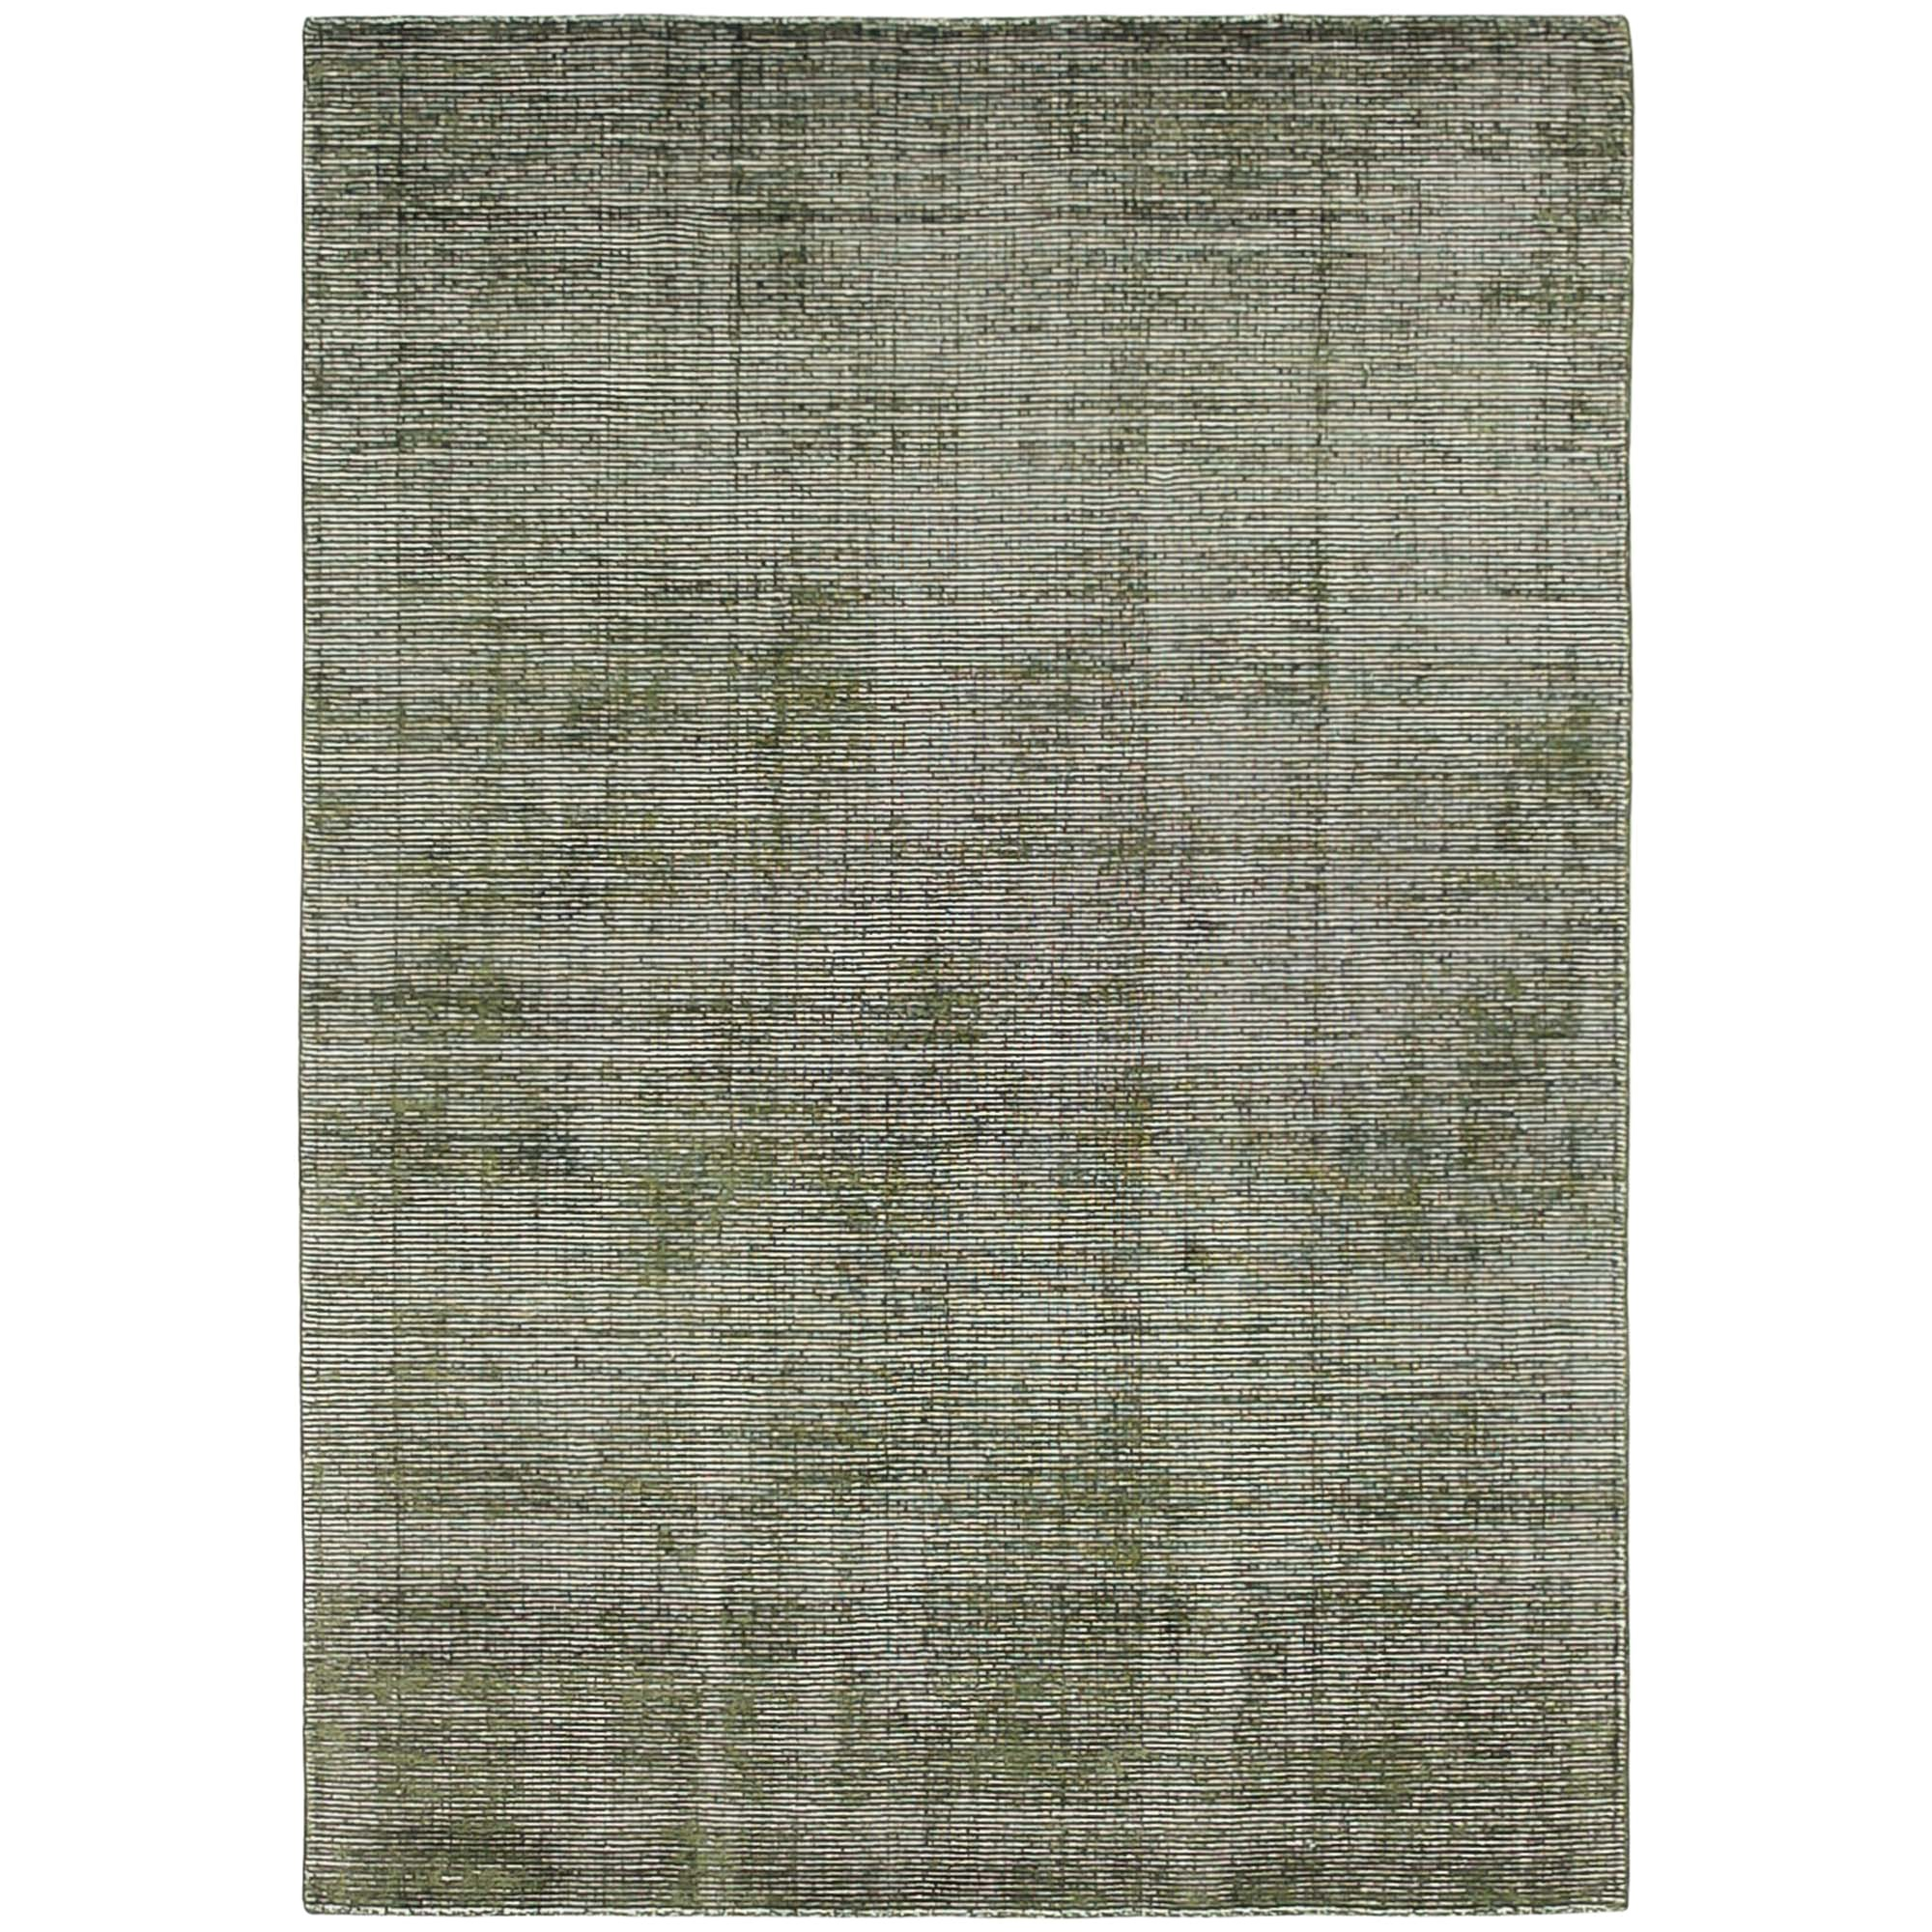 Elements Hand Knotted Wool Rug, 160x230cm, Green